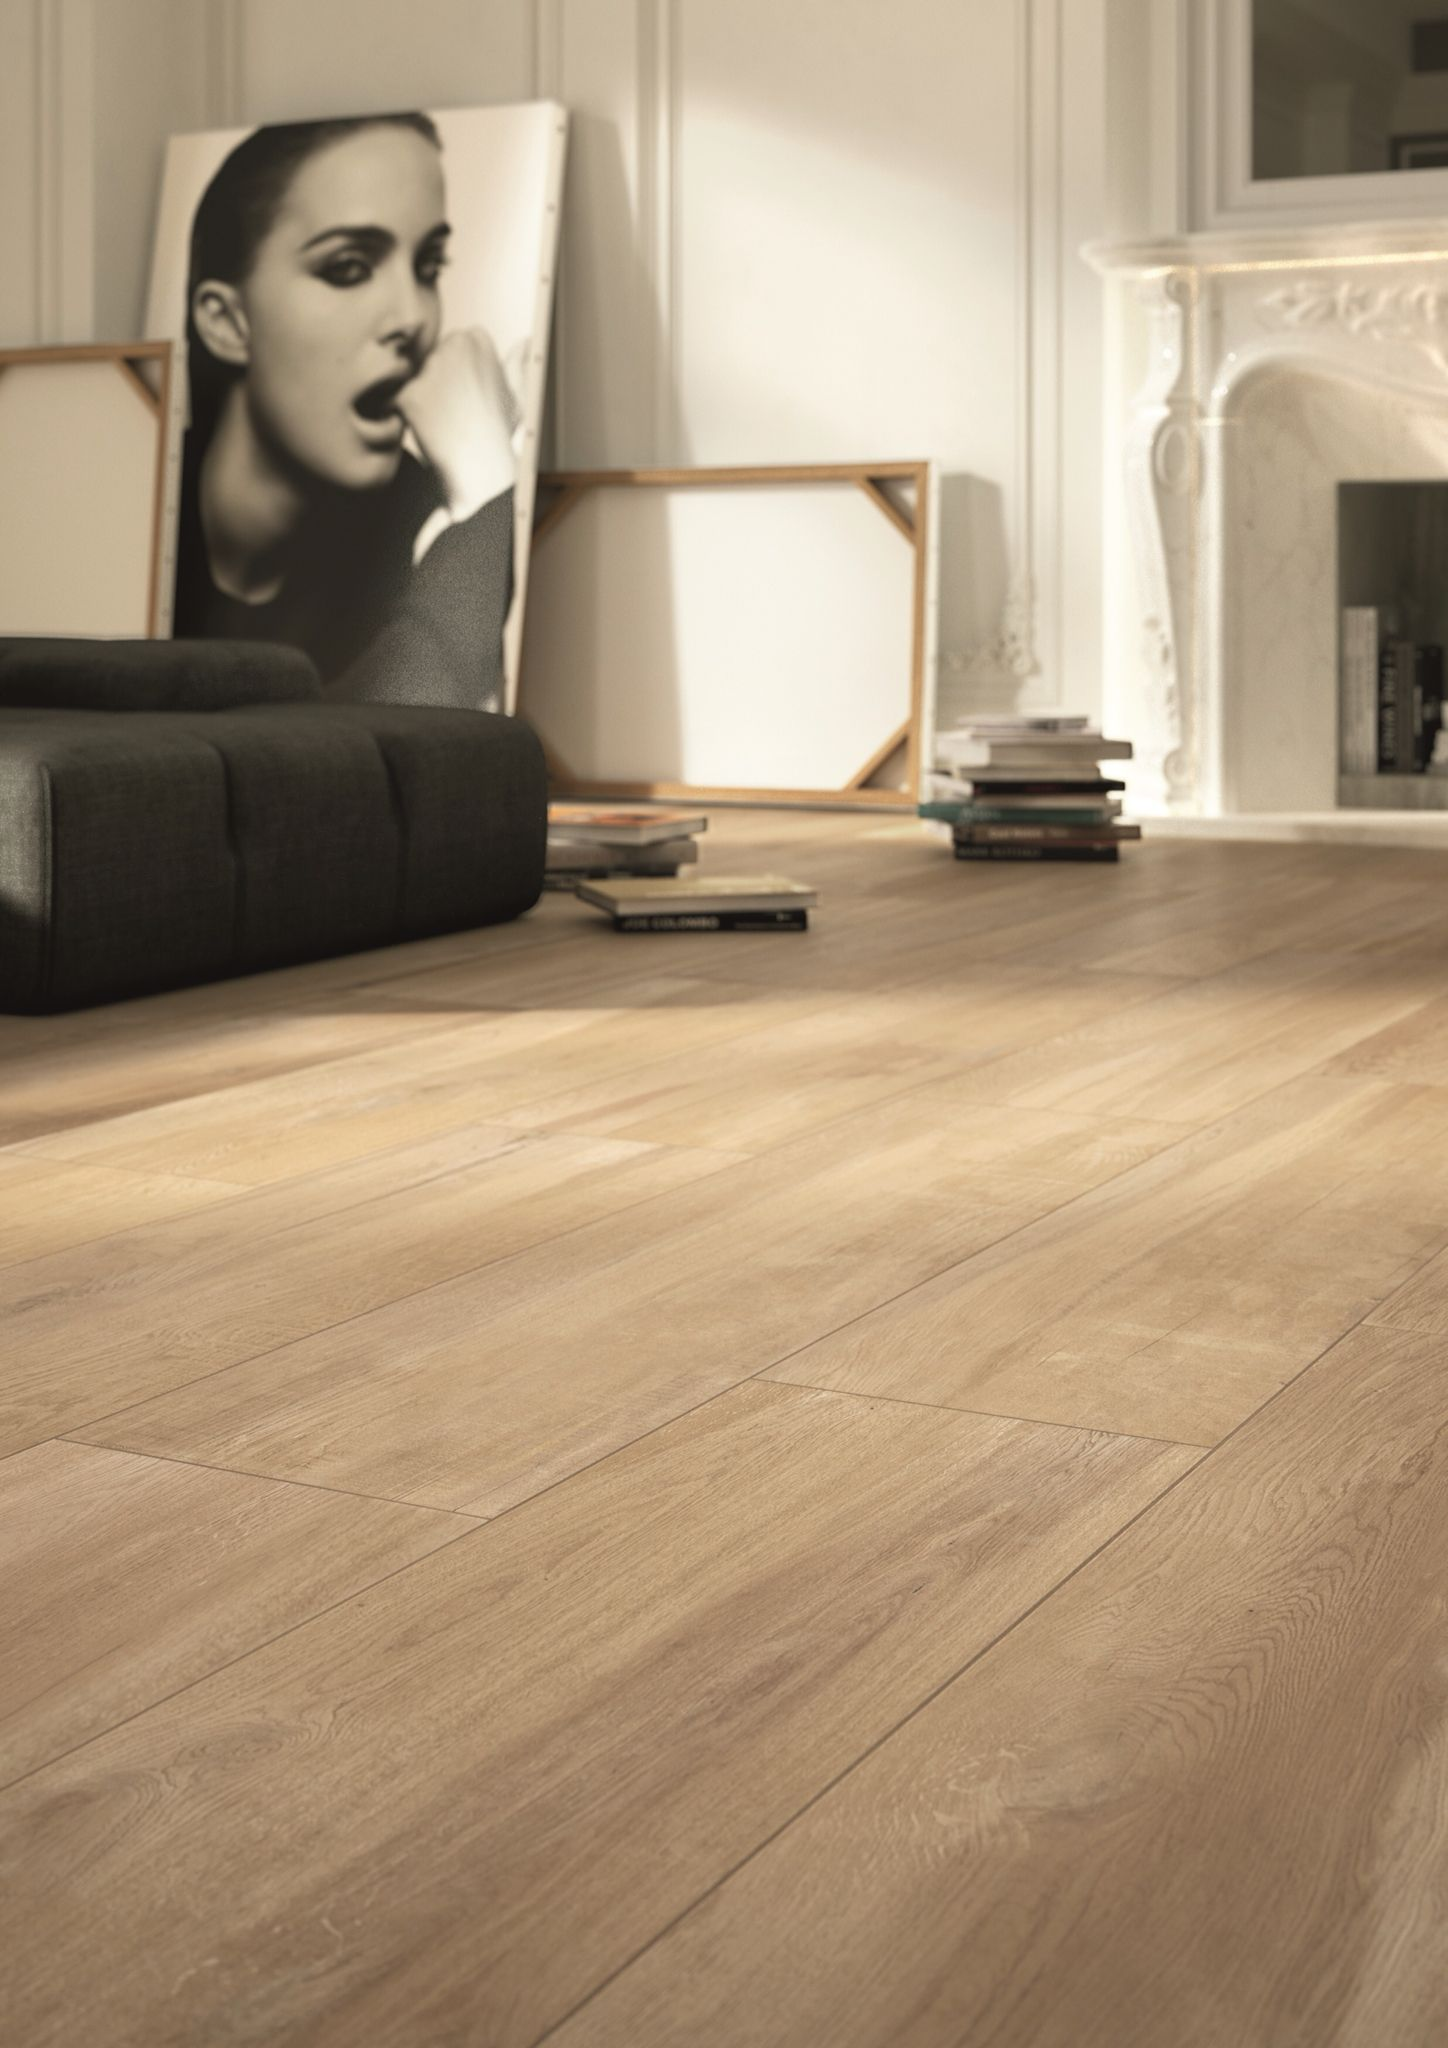 Argenteno Maple Porcelain Planks Stunning Wood Effect Tiles 5 Beautiful Shades And Very Practical Ma Wood Look Tile Floor Wood Tile Floors Wood Look Tile